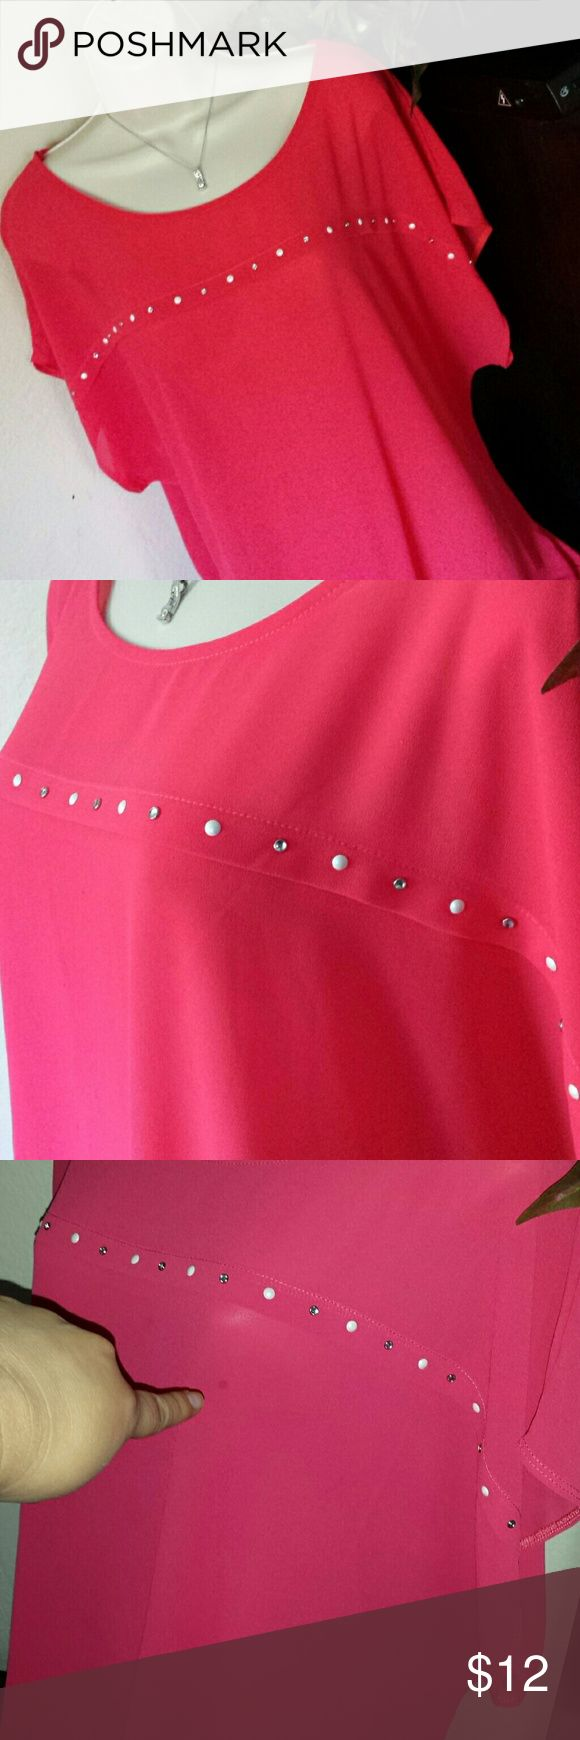 Beautiful Hot Pink Shirt!! Minor defect on one side of the shirt had a small grease stain.  I provided 2nd picture without flash and strain is not visible.  3rd picture i took with flash pointing at stain and there you can see the stain.   Price reduced.  Feel free to make offers! Banabee Tops